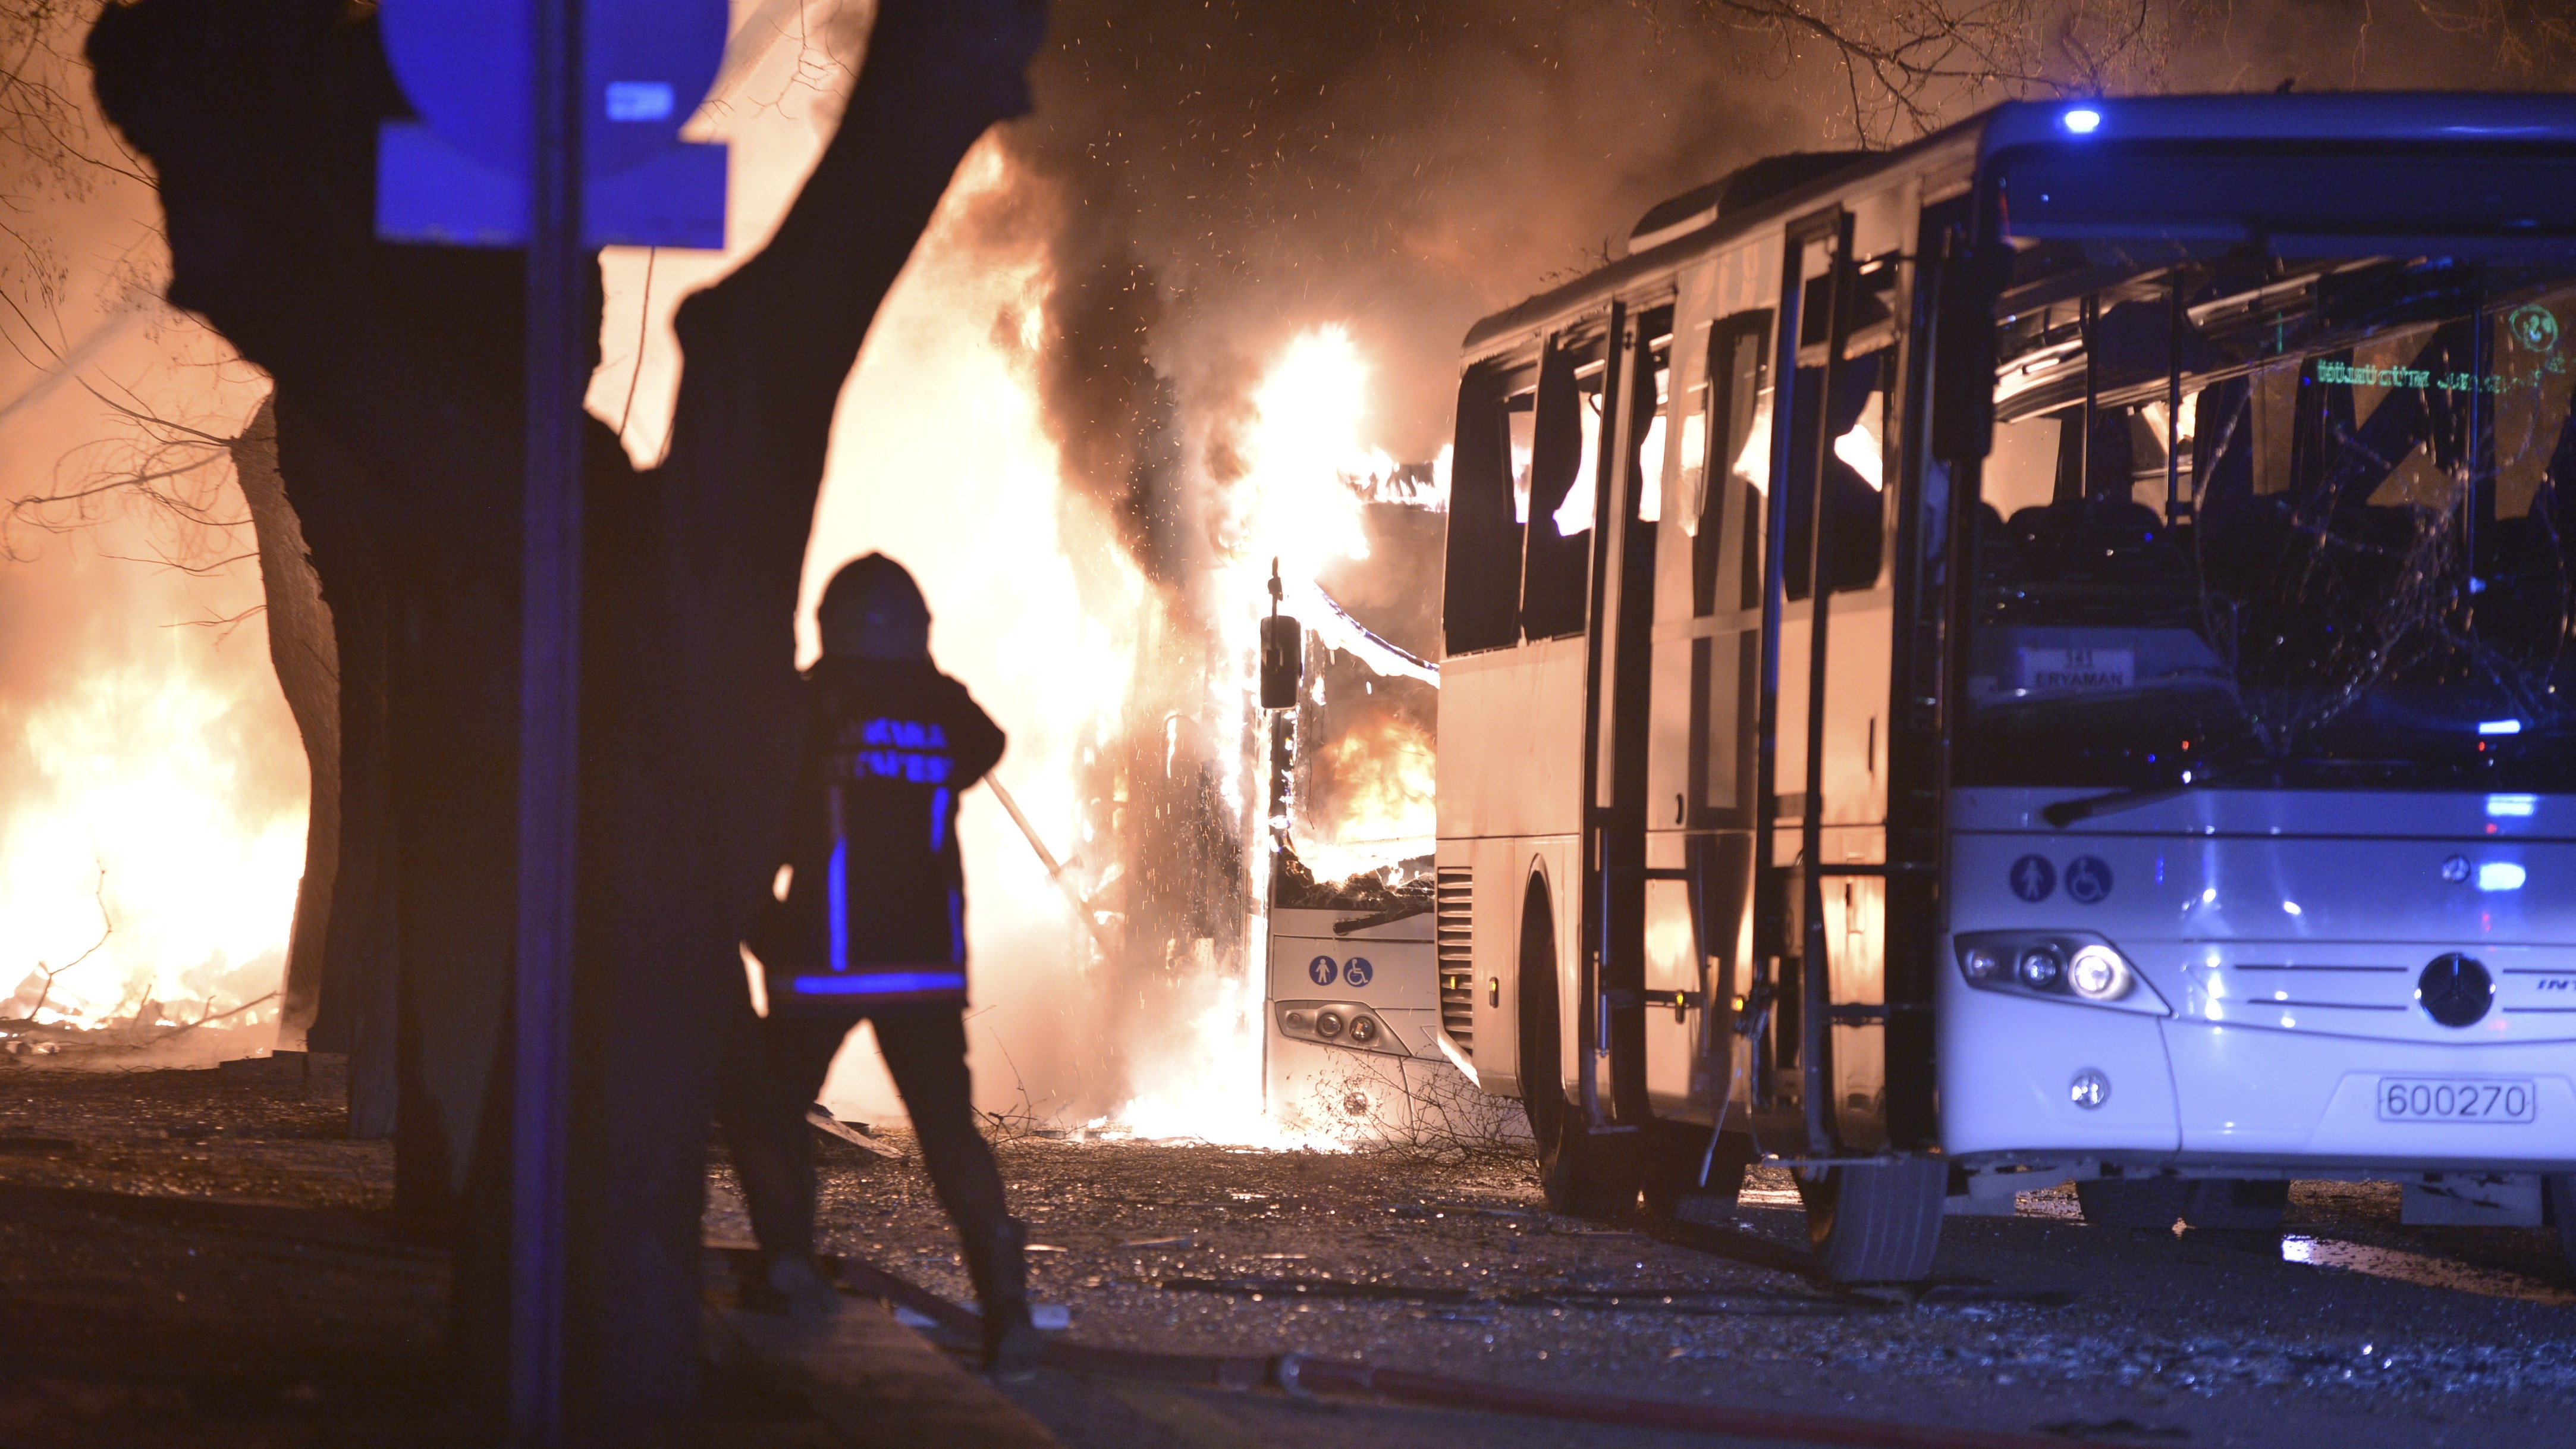 Firefighters work at a scene of fire from an explosion in Ankara, Wednesday, Feb. 17, 2016. A large explosion, believed to have been caused by a bomb, injured several people in the Turkish capital on Wednesday, according to media reports. Private NTV said the explosion occurred during rush hour in an area close to where military headquarters are located as a bus carrying military personnel was passing by. () TURKEY OUT